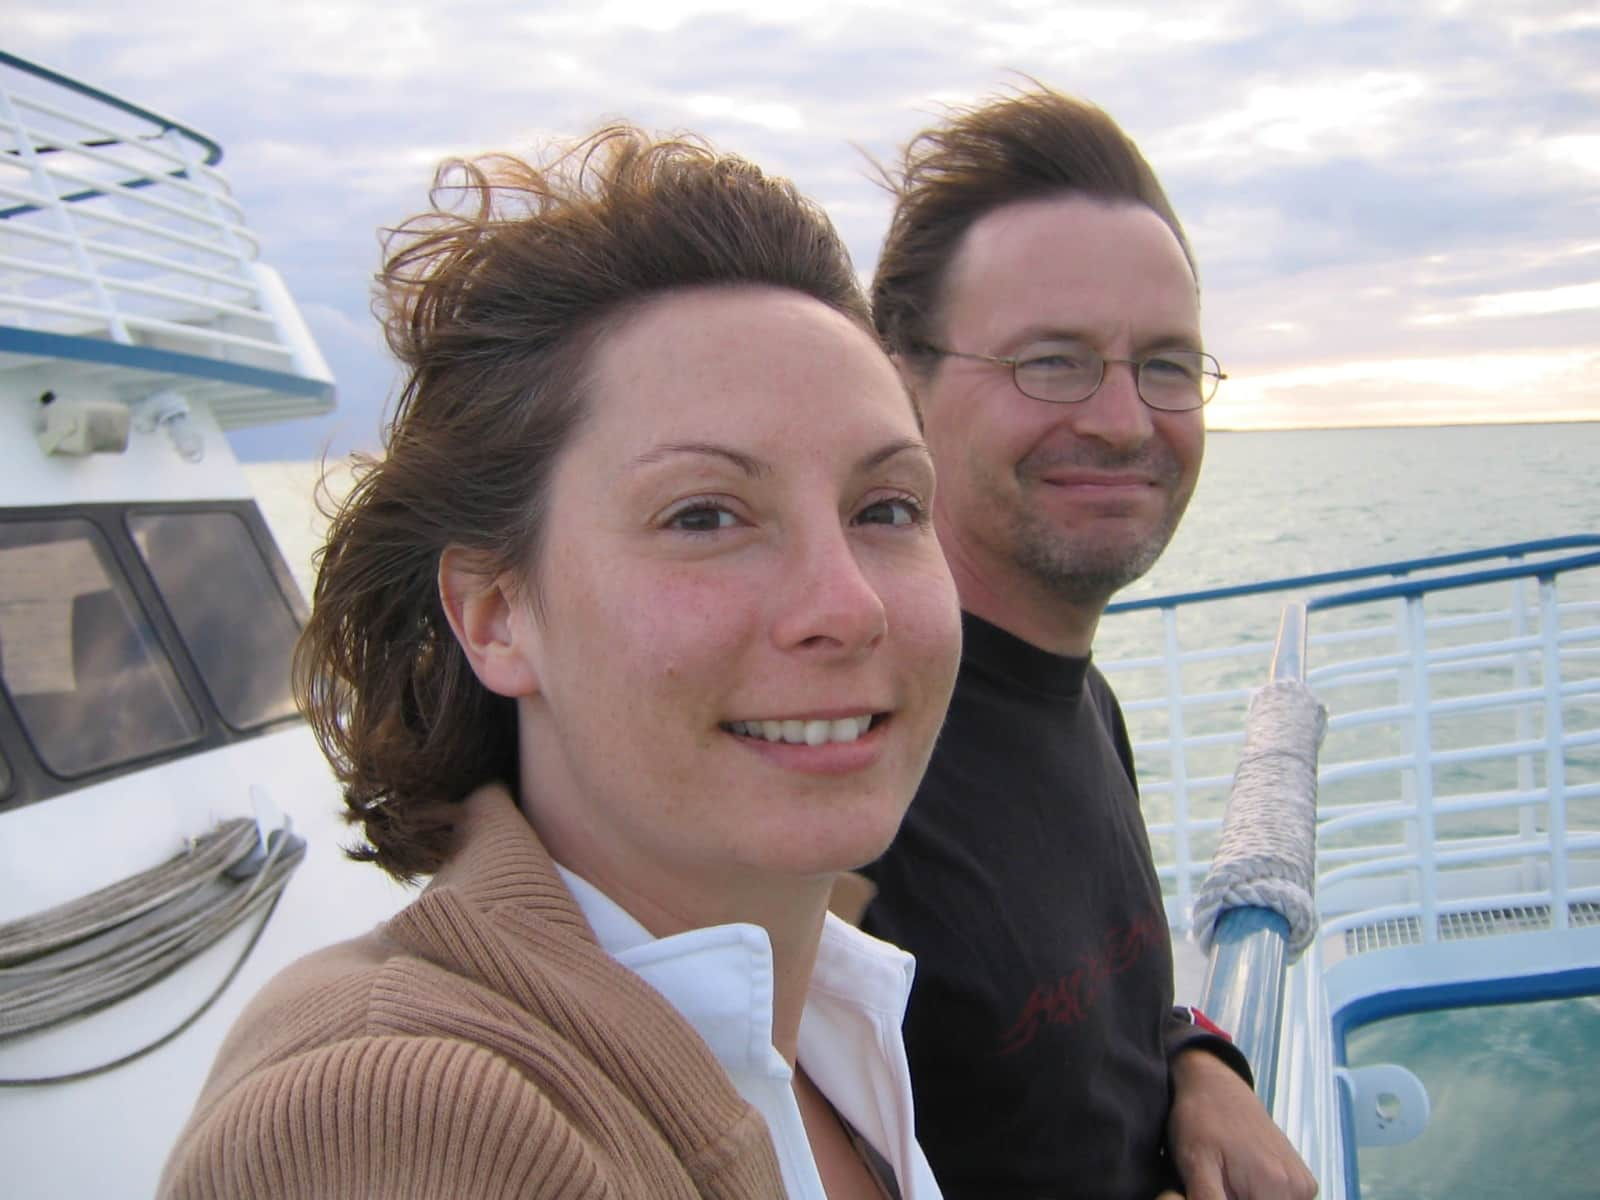 Cindy & Mark from Victoria, British Columbia, Canada